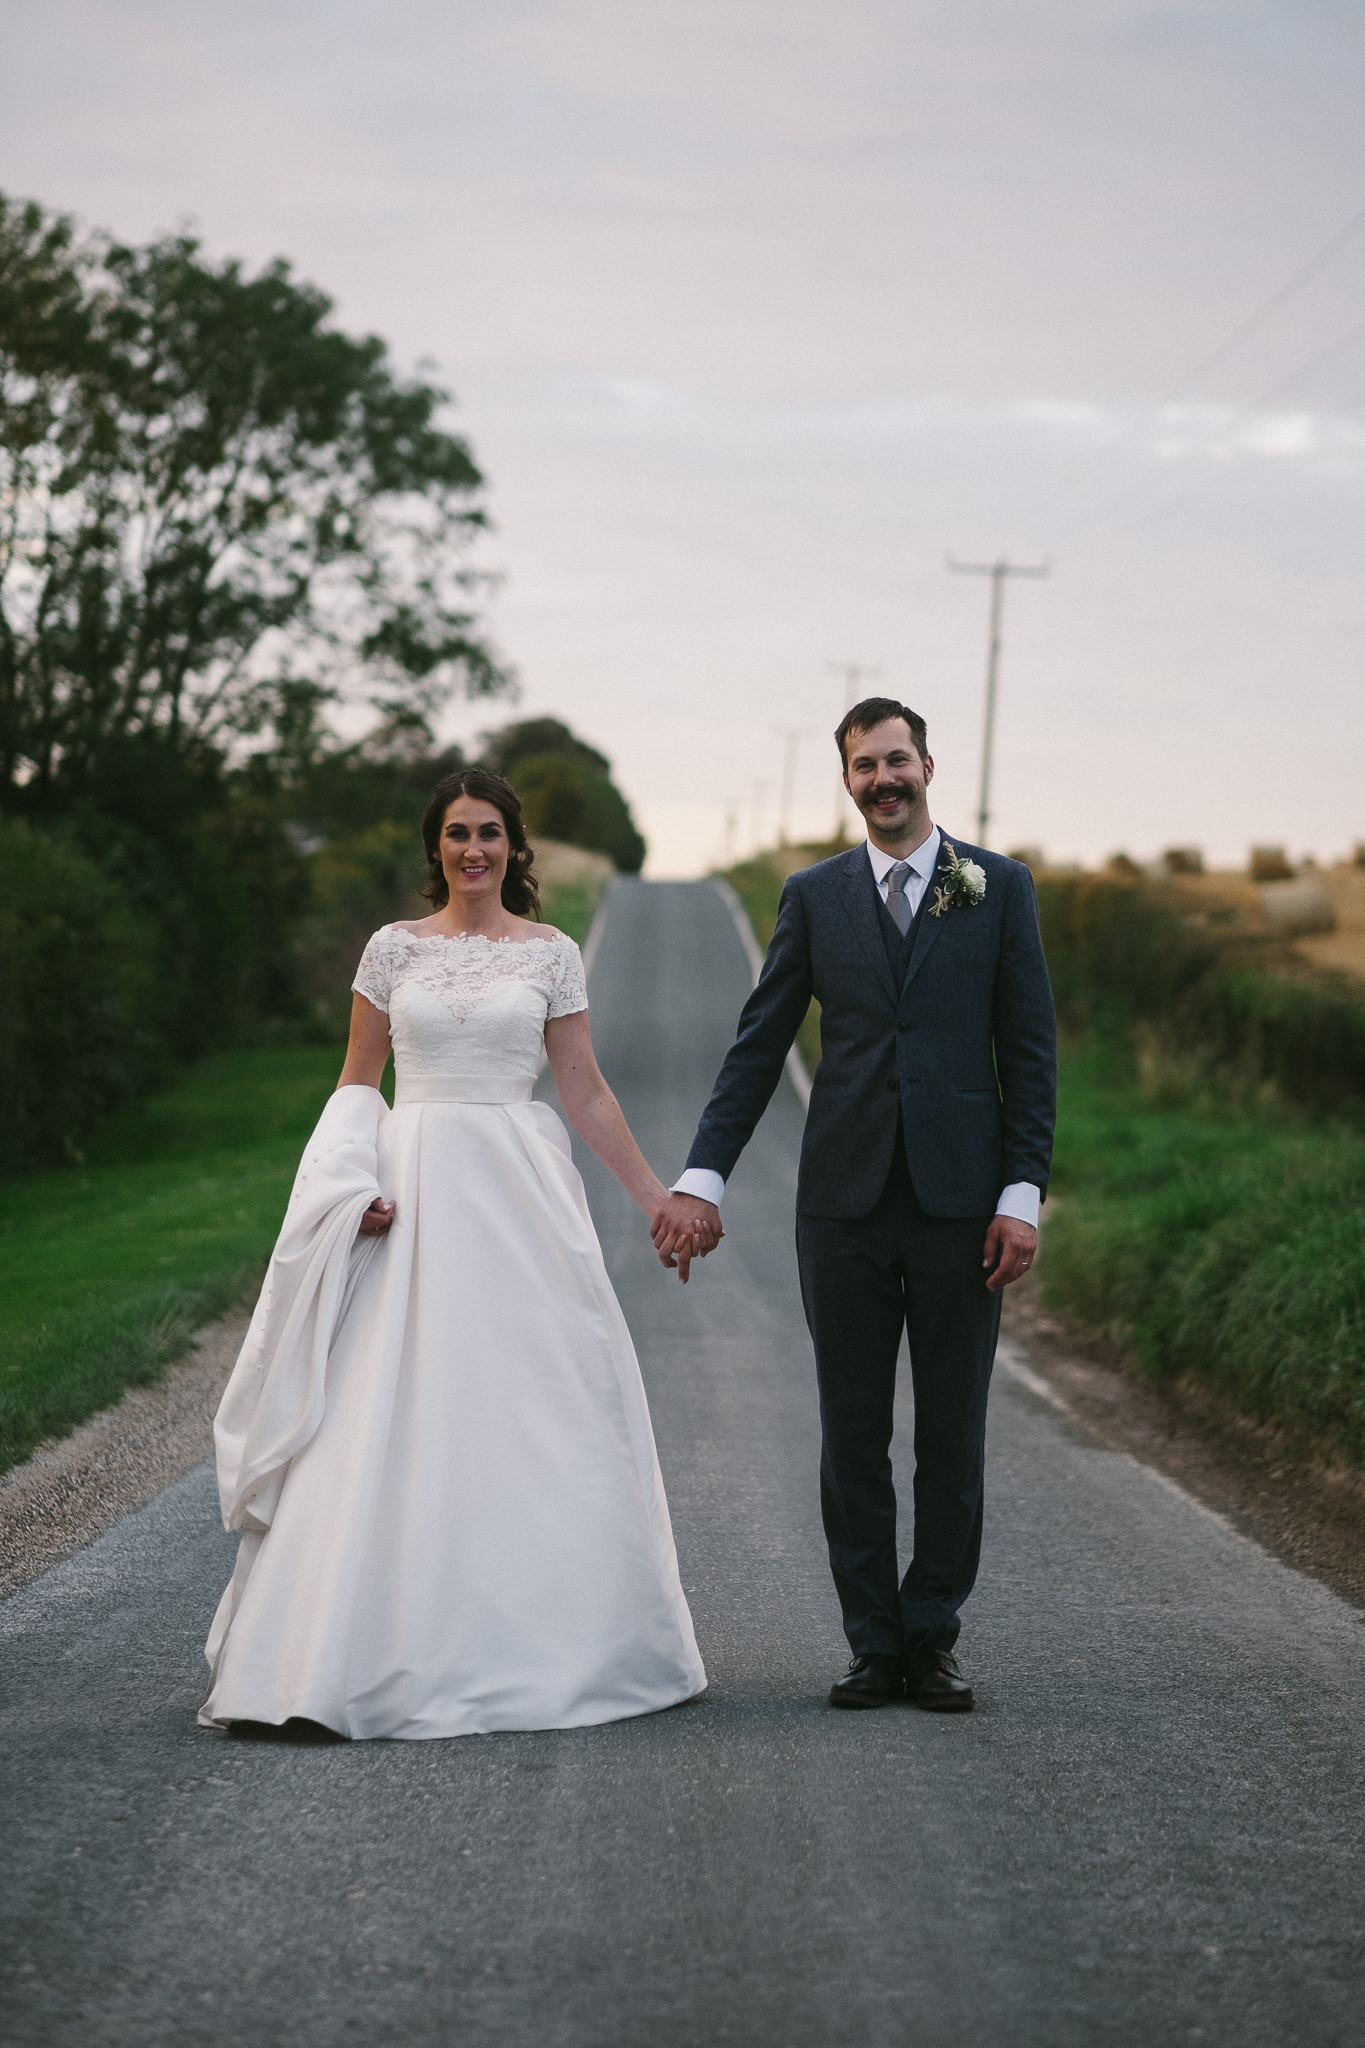 Bride and groom hold hands in the middle of the road